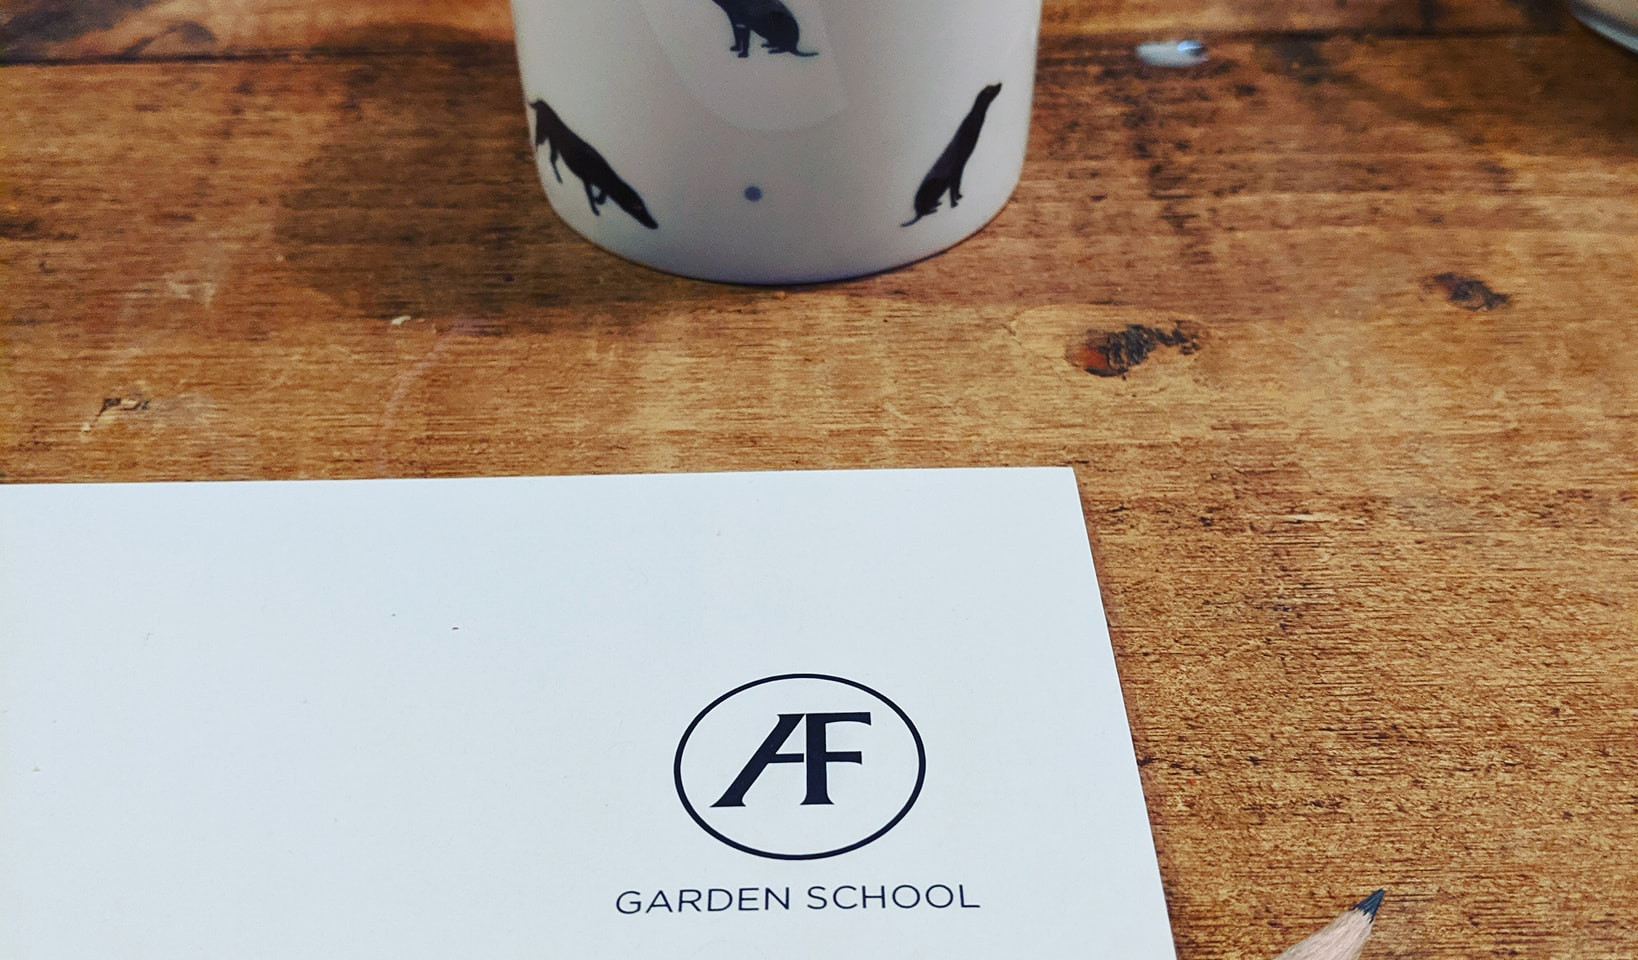 Garden school stationery.jpg